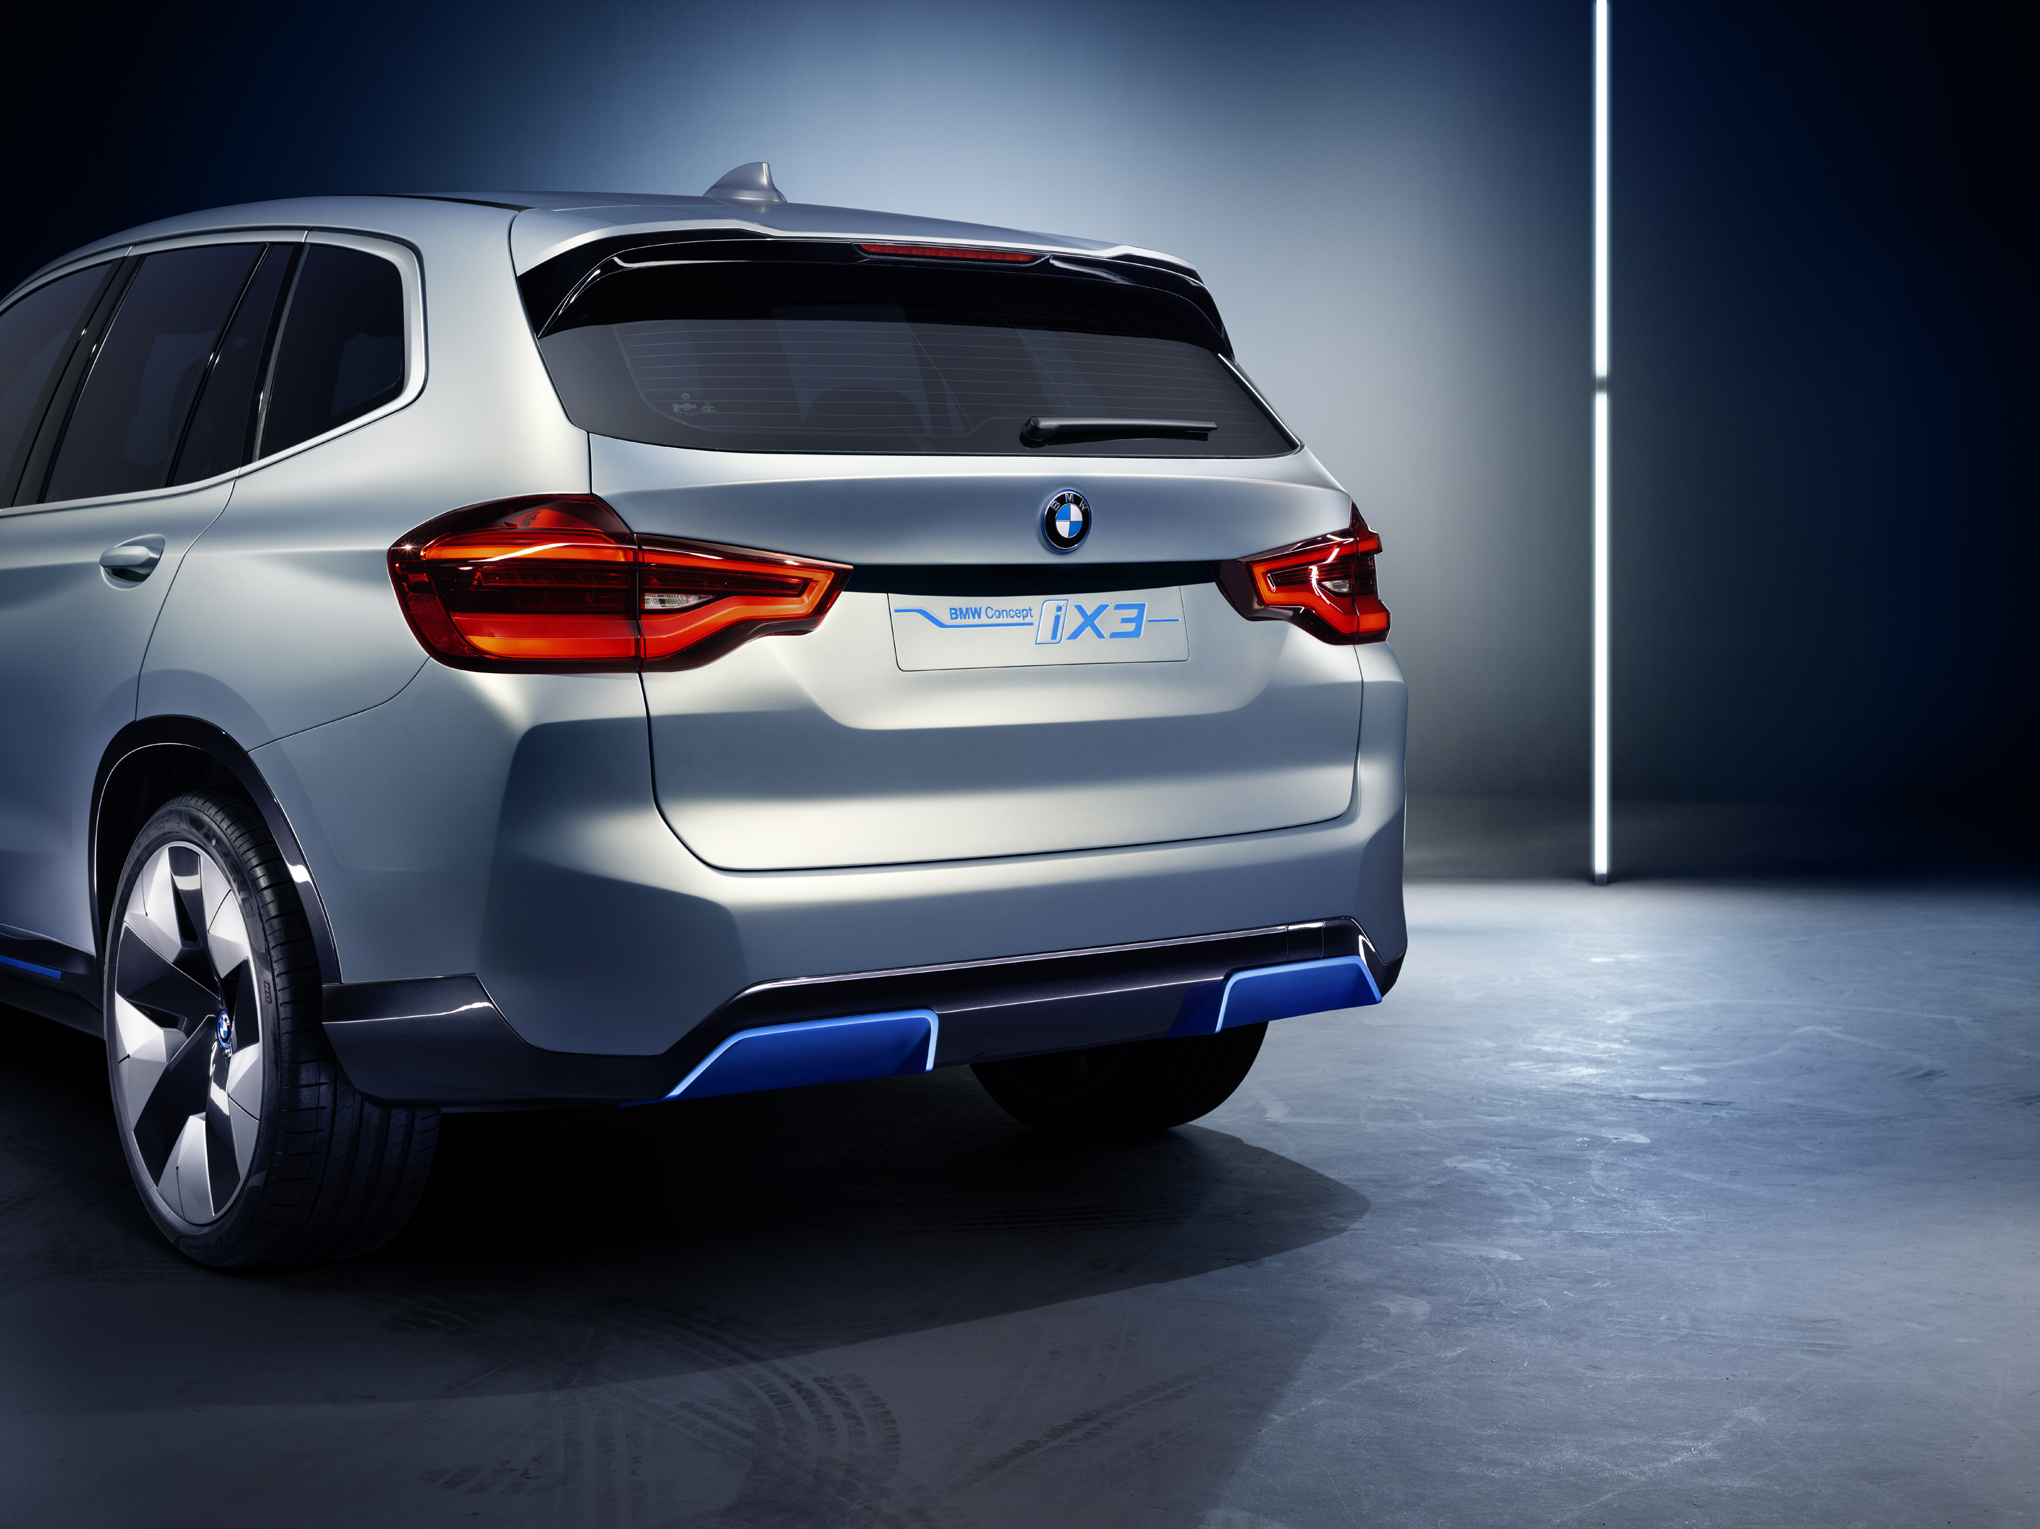 Bmw S Ix3 Is The Company S First Normal Looking All